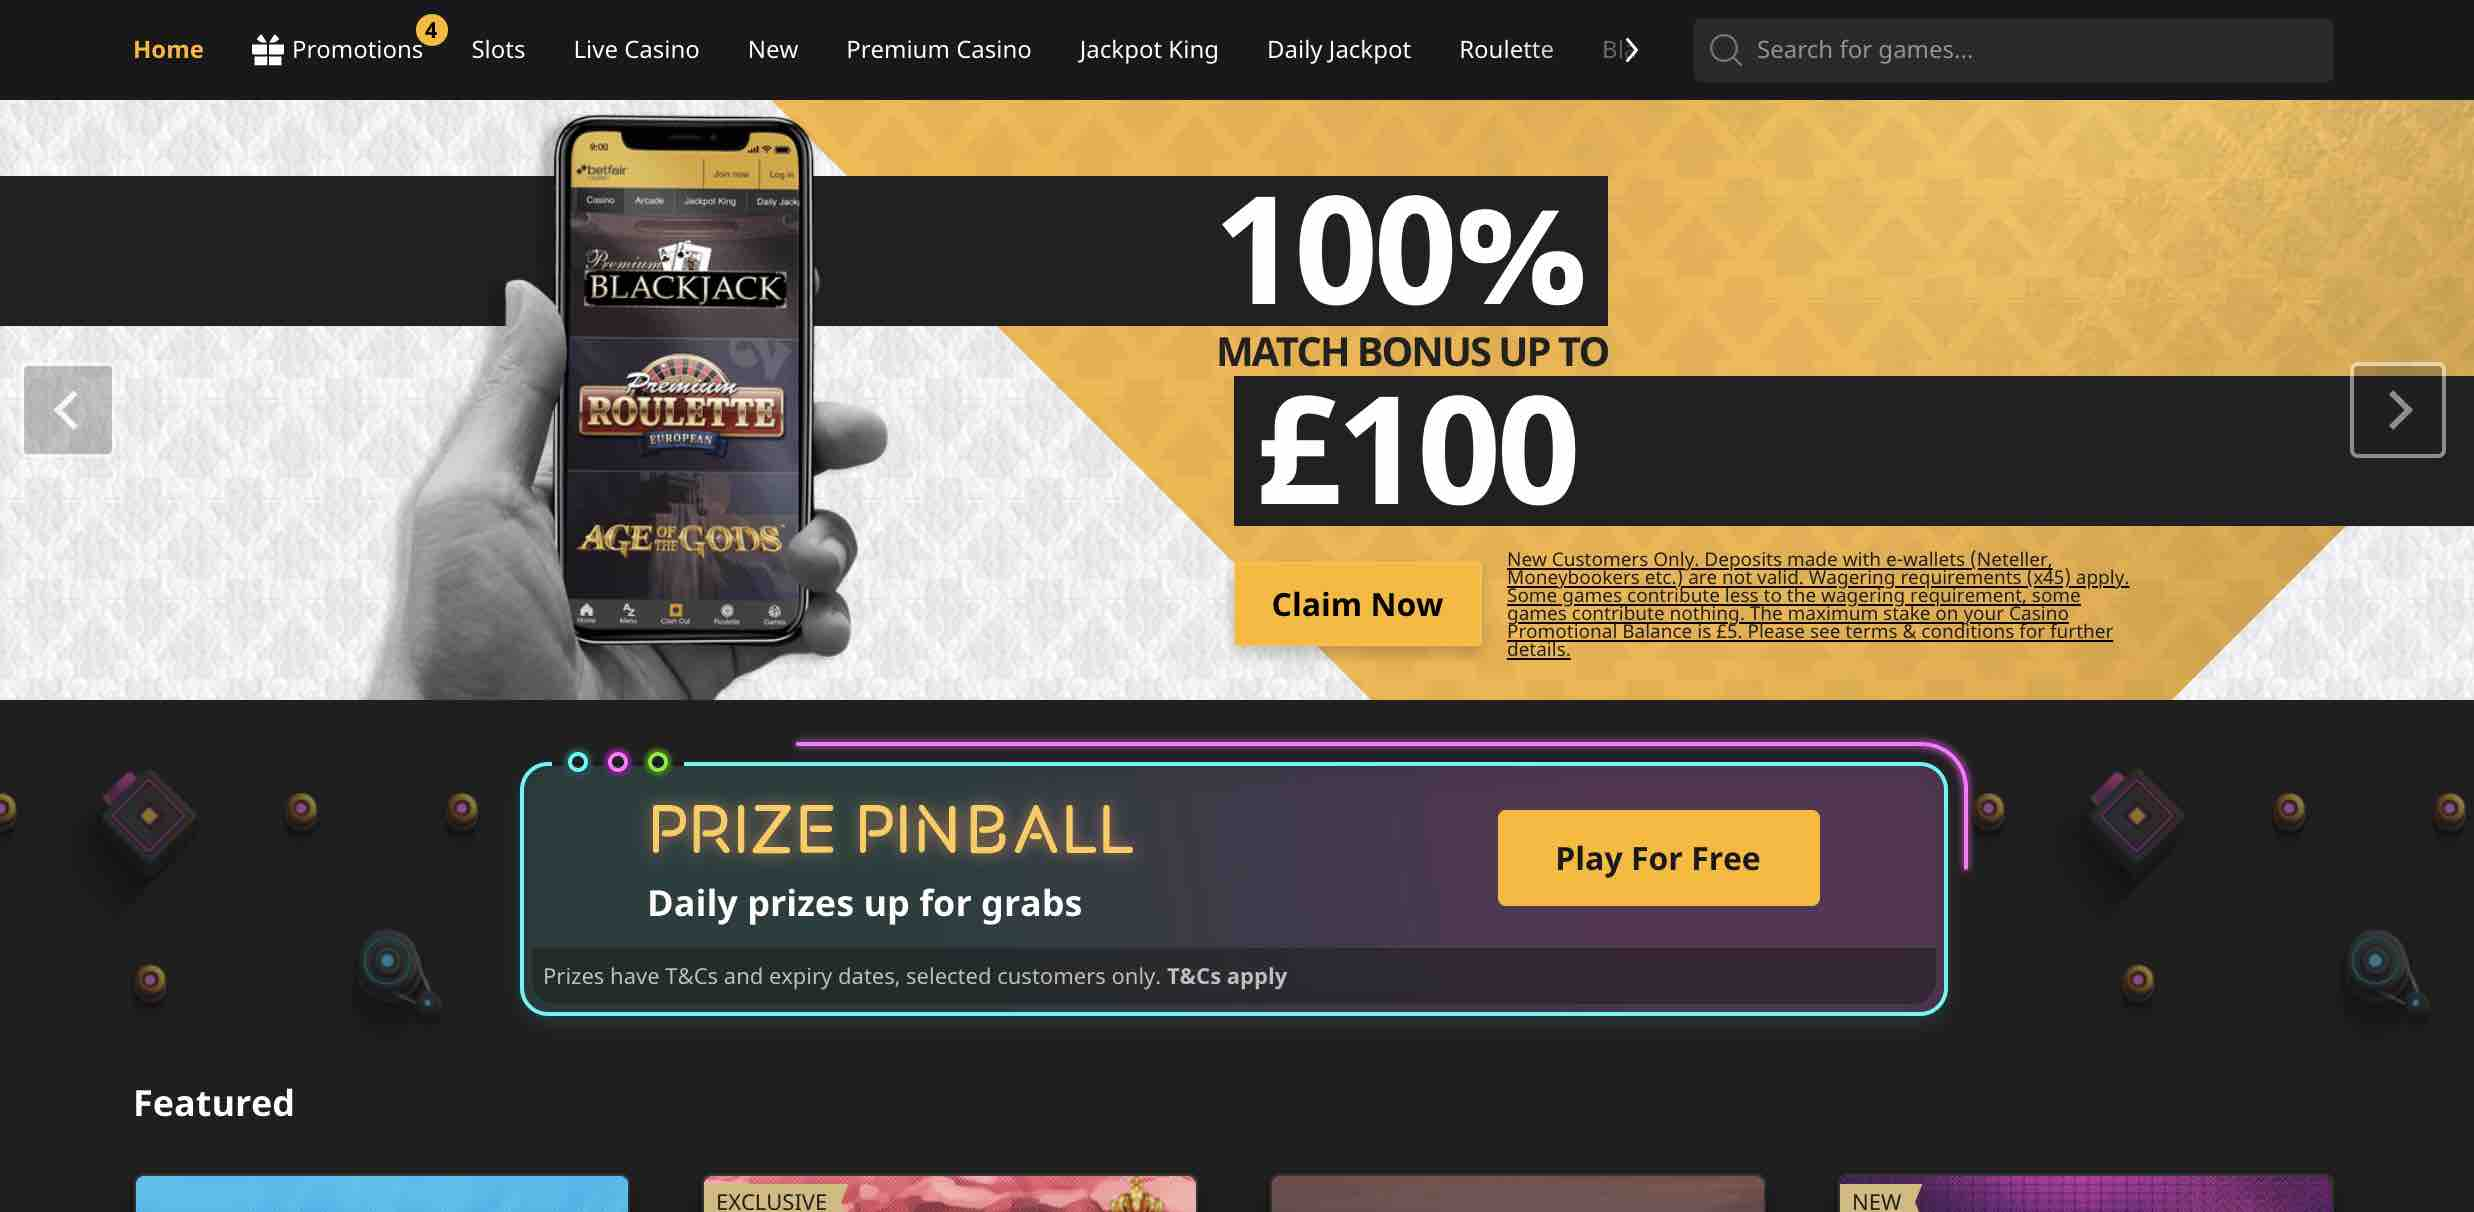 Get up to £100 at Betfair Casino